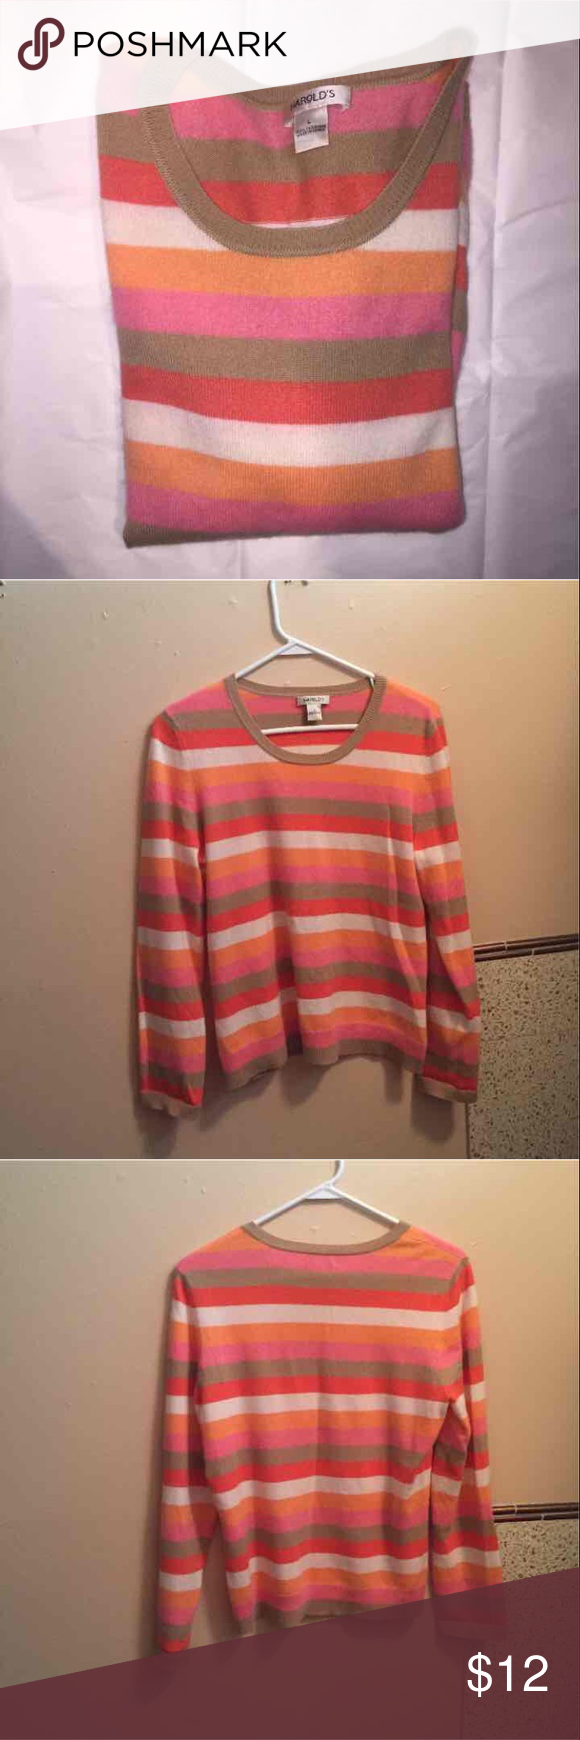 Harold's 100% cashmere sweater large L Selling for my friend who ...